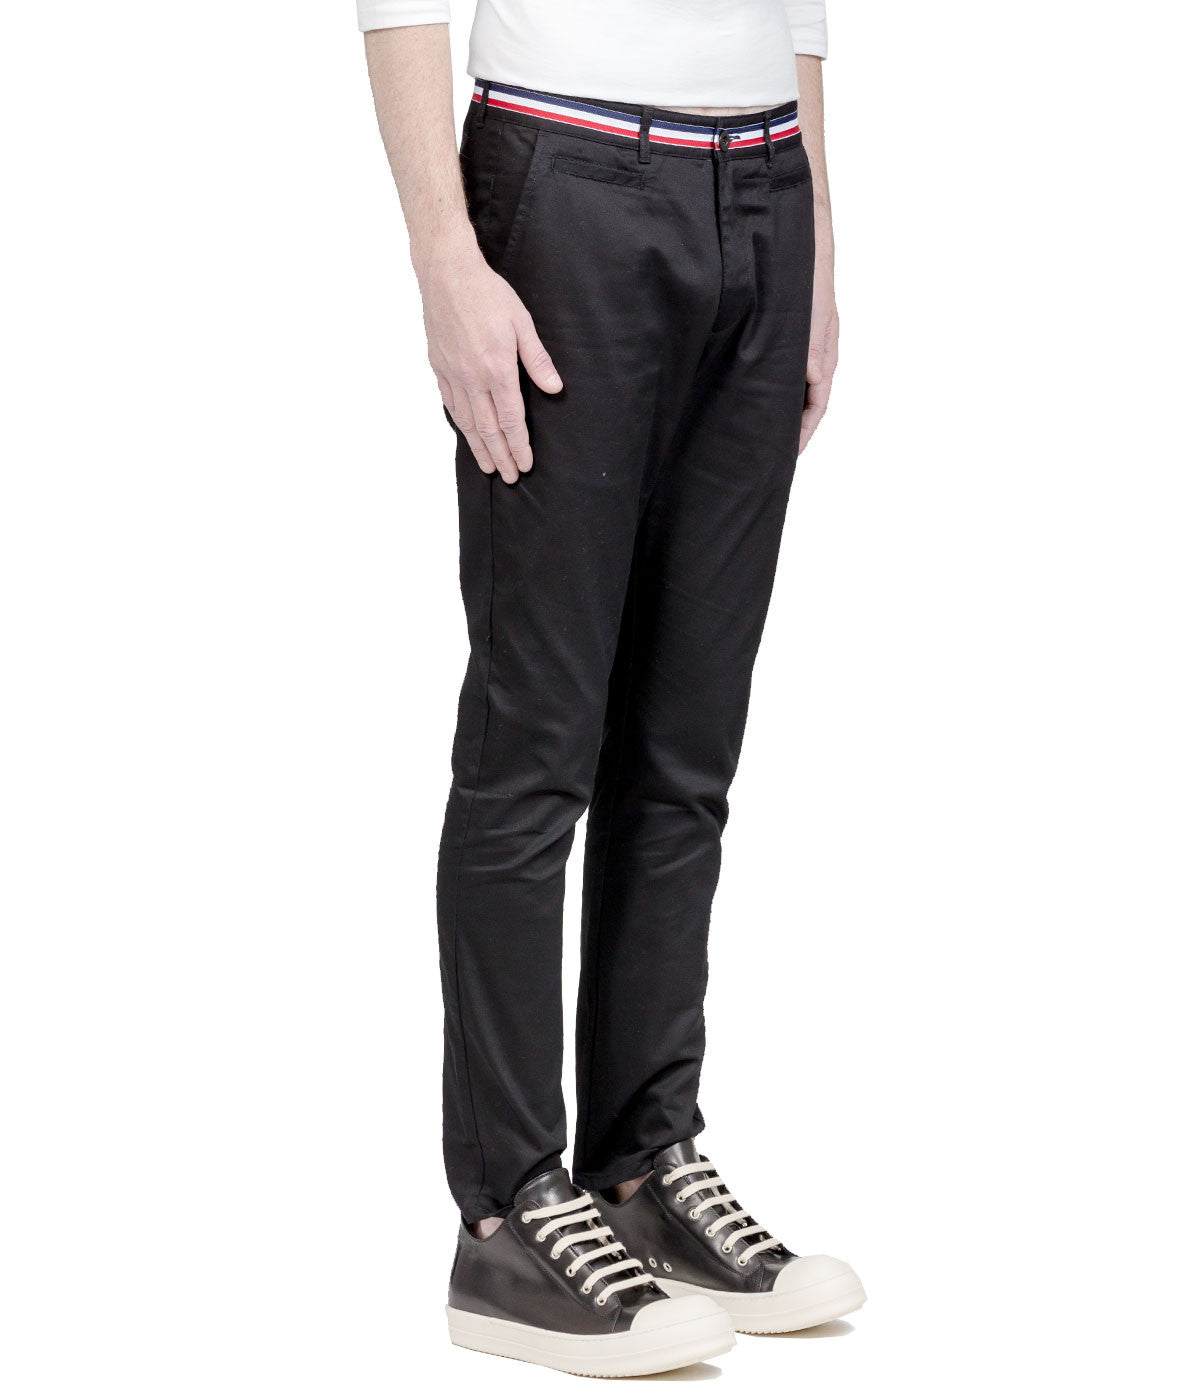 Black Chino Pants